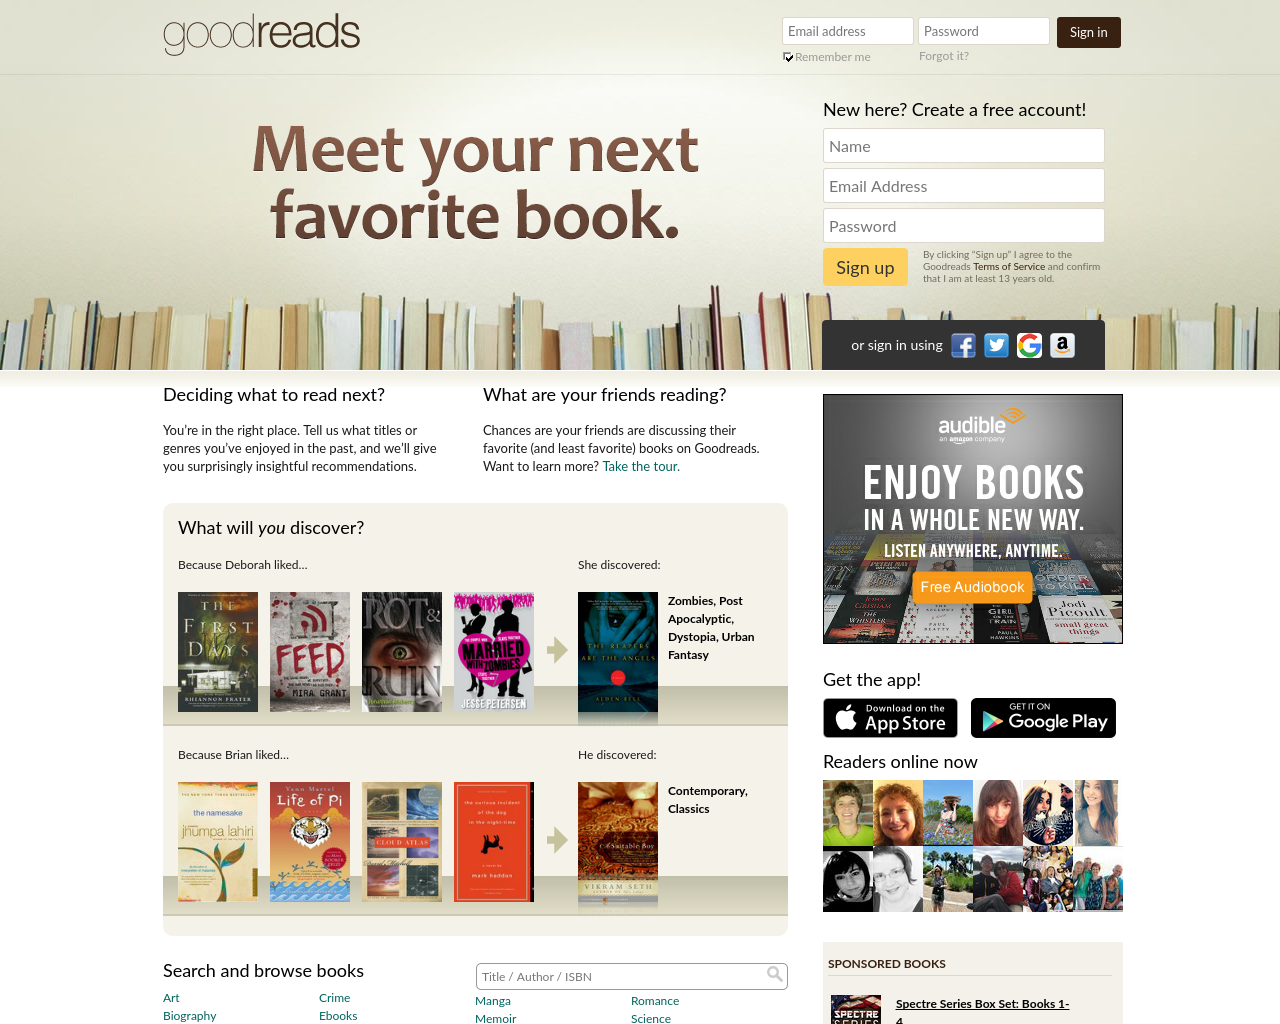 Goodreads-Advertising-Reviews-Pricing